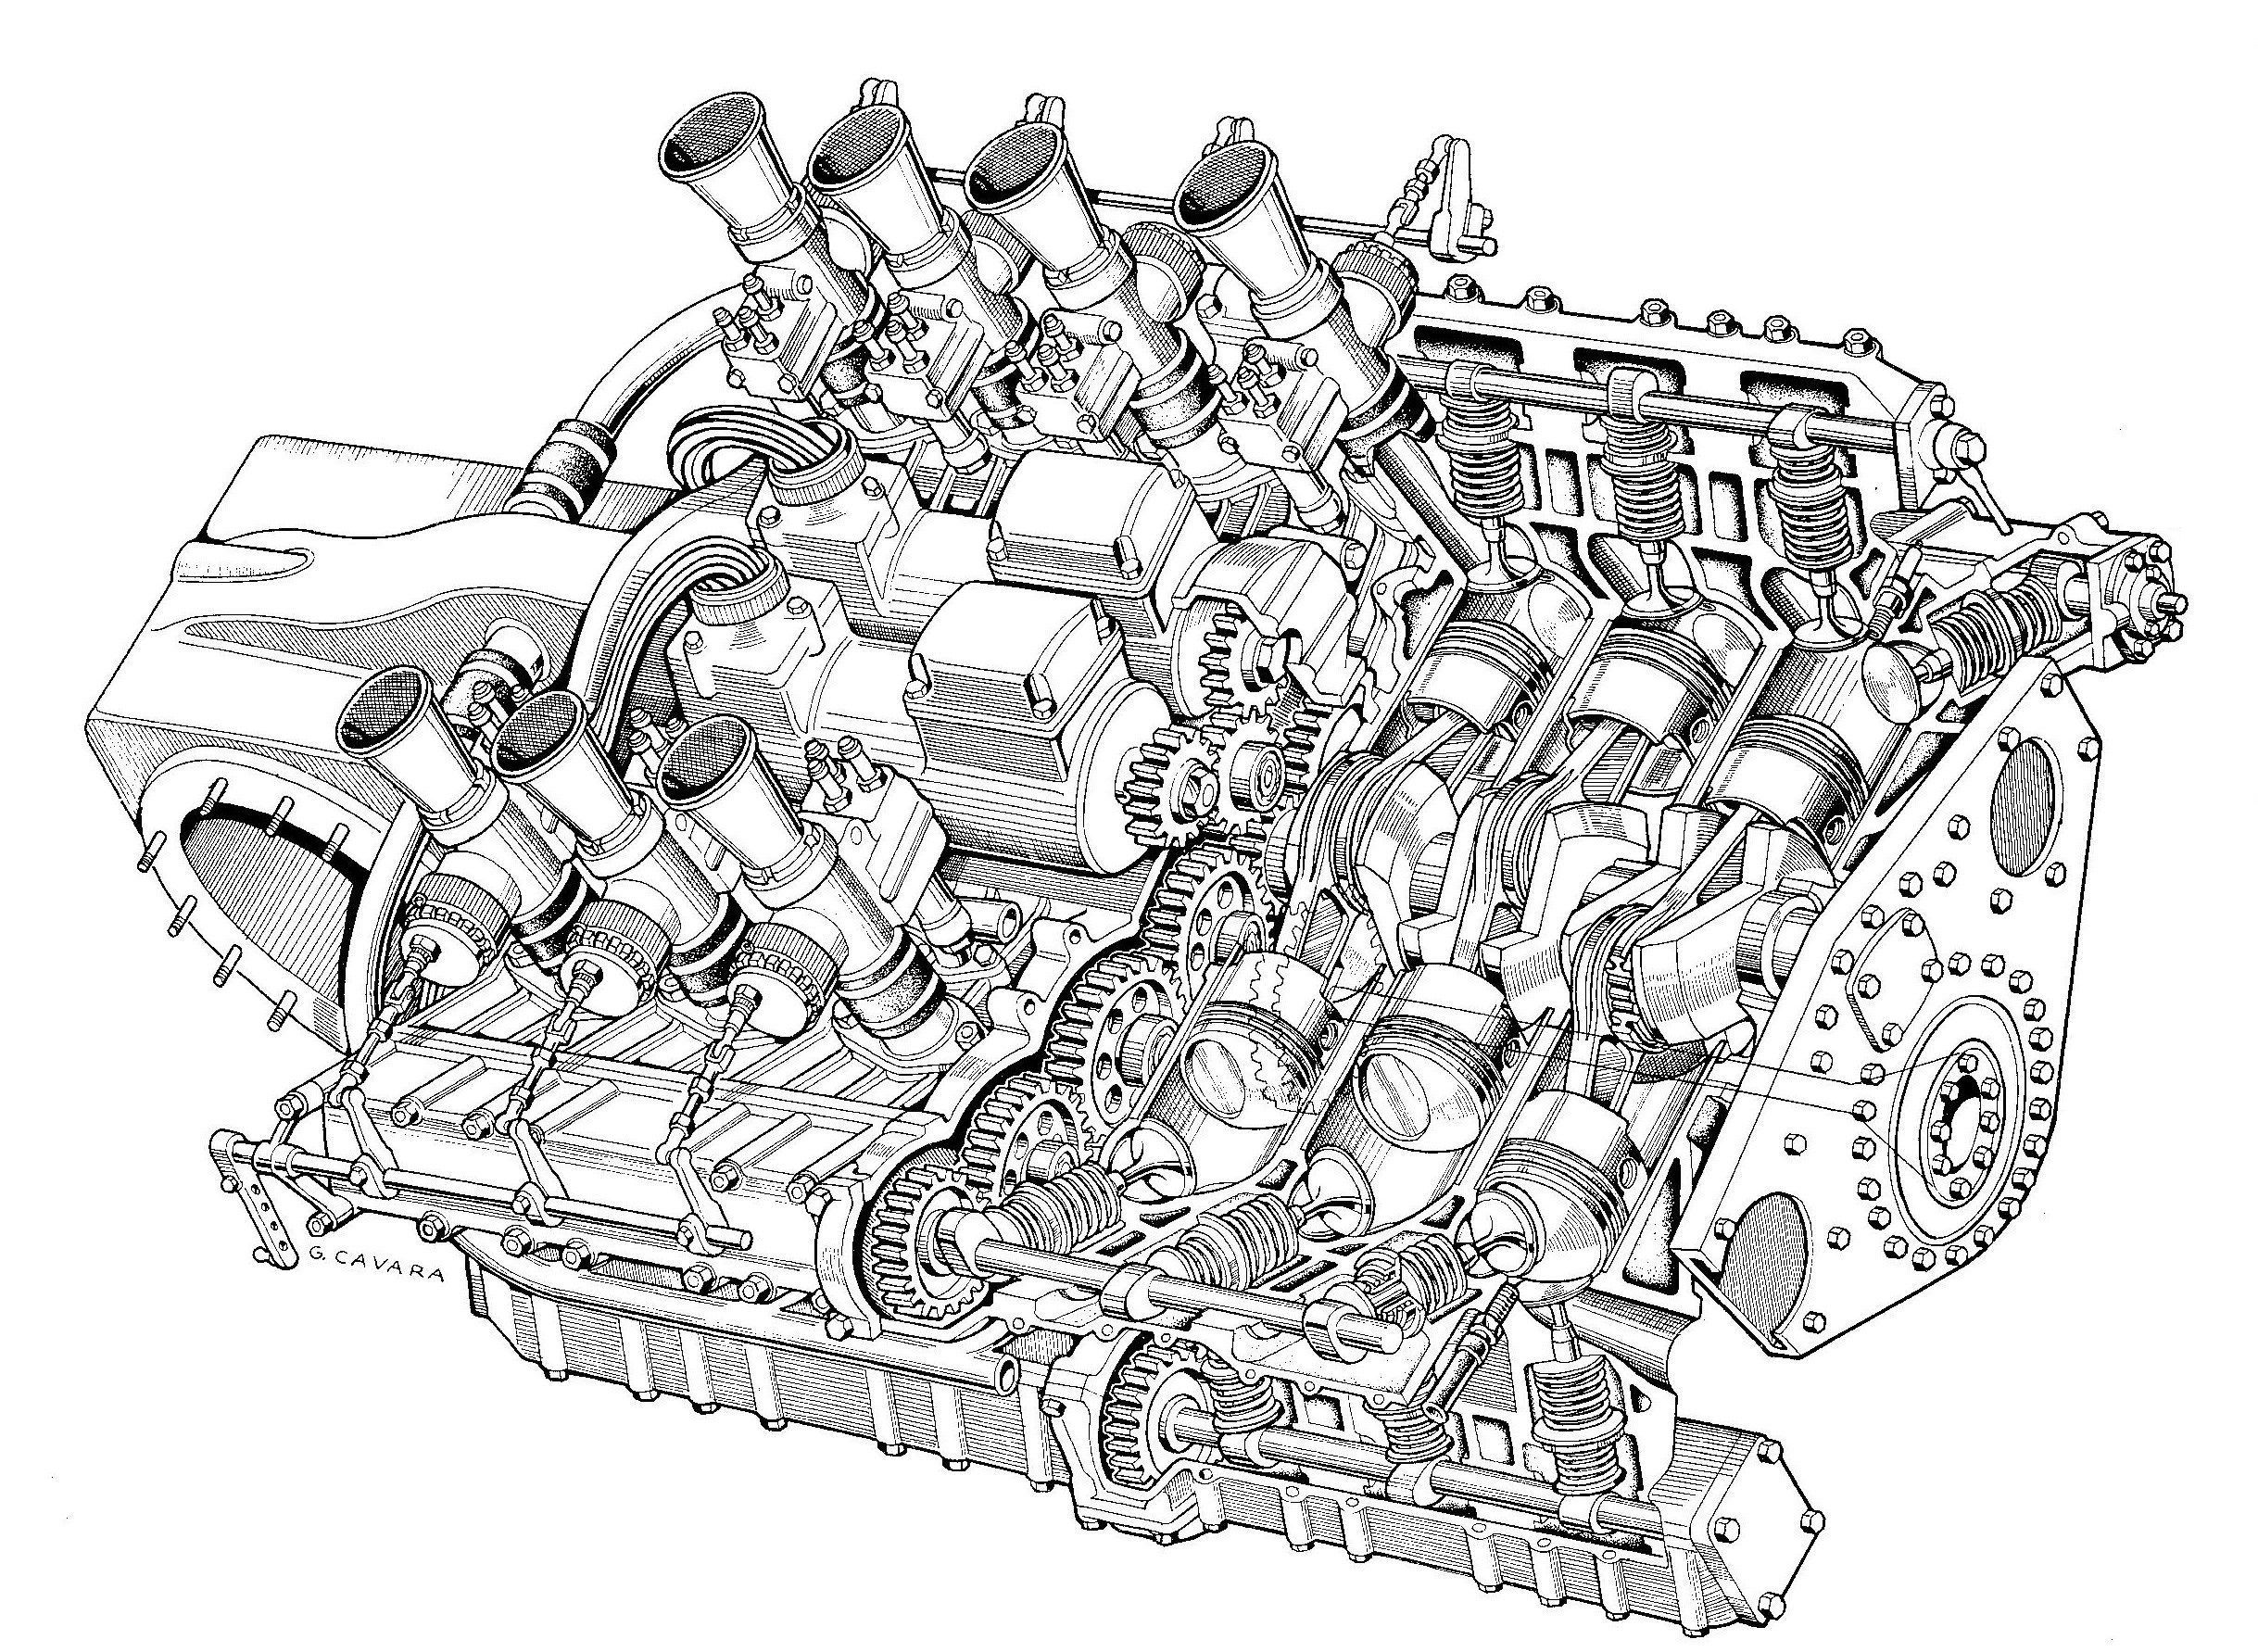 2 500cc flat 12 alfa romeo engine for the alfetta 160 project of 1952 illustrated by g iovanni cavara [ 2437 x 1783 Pixel ]